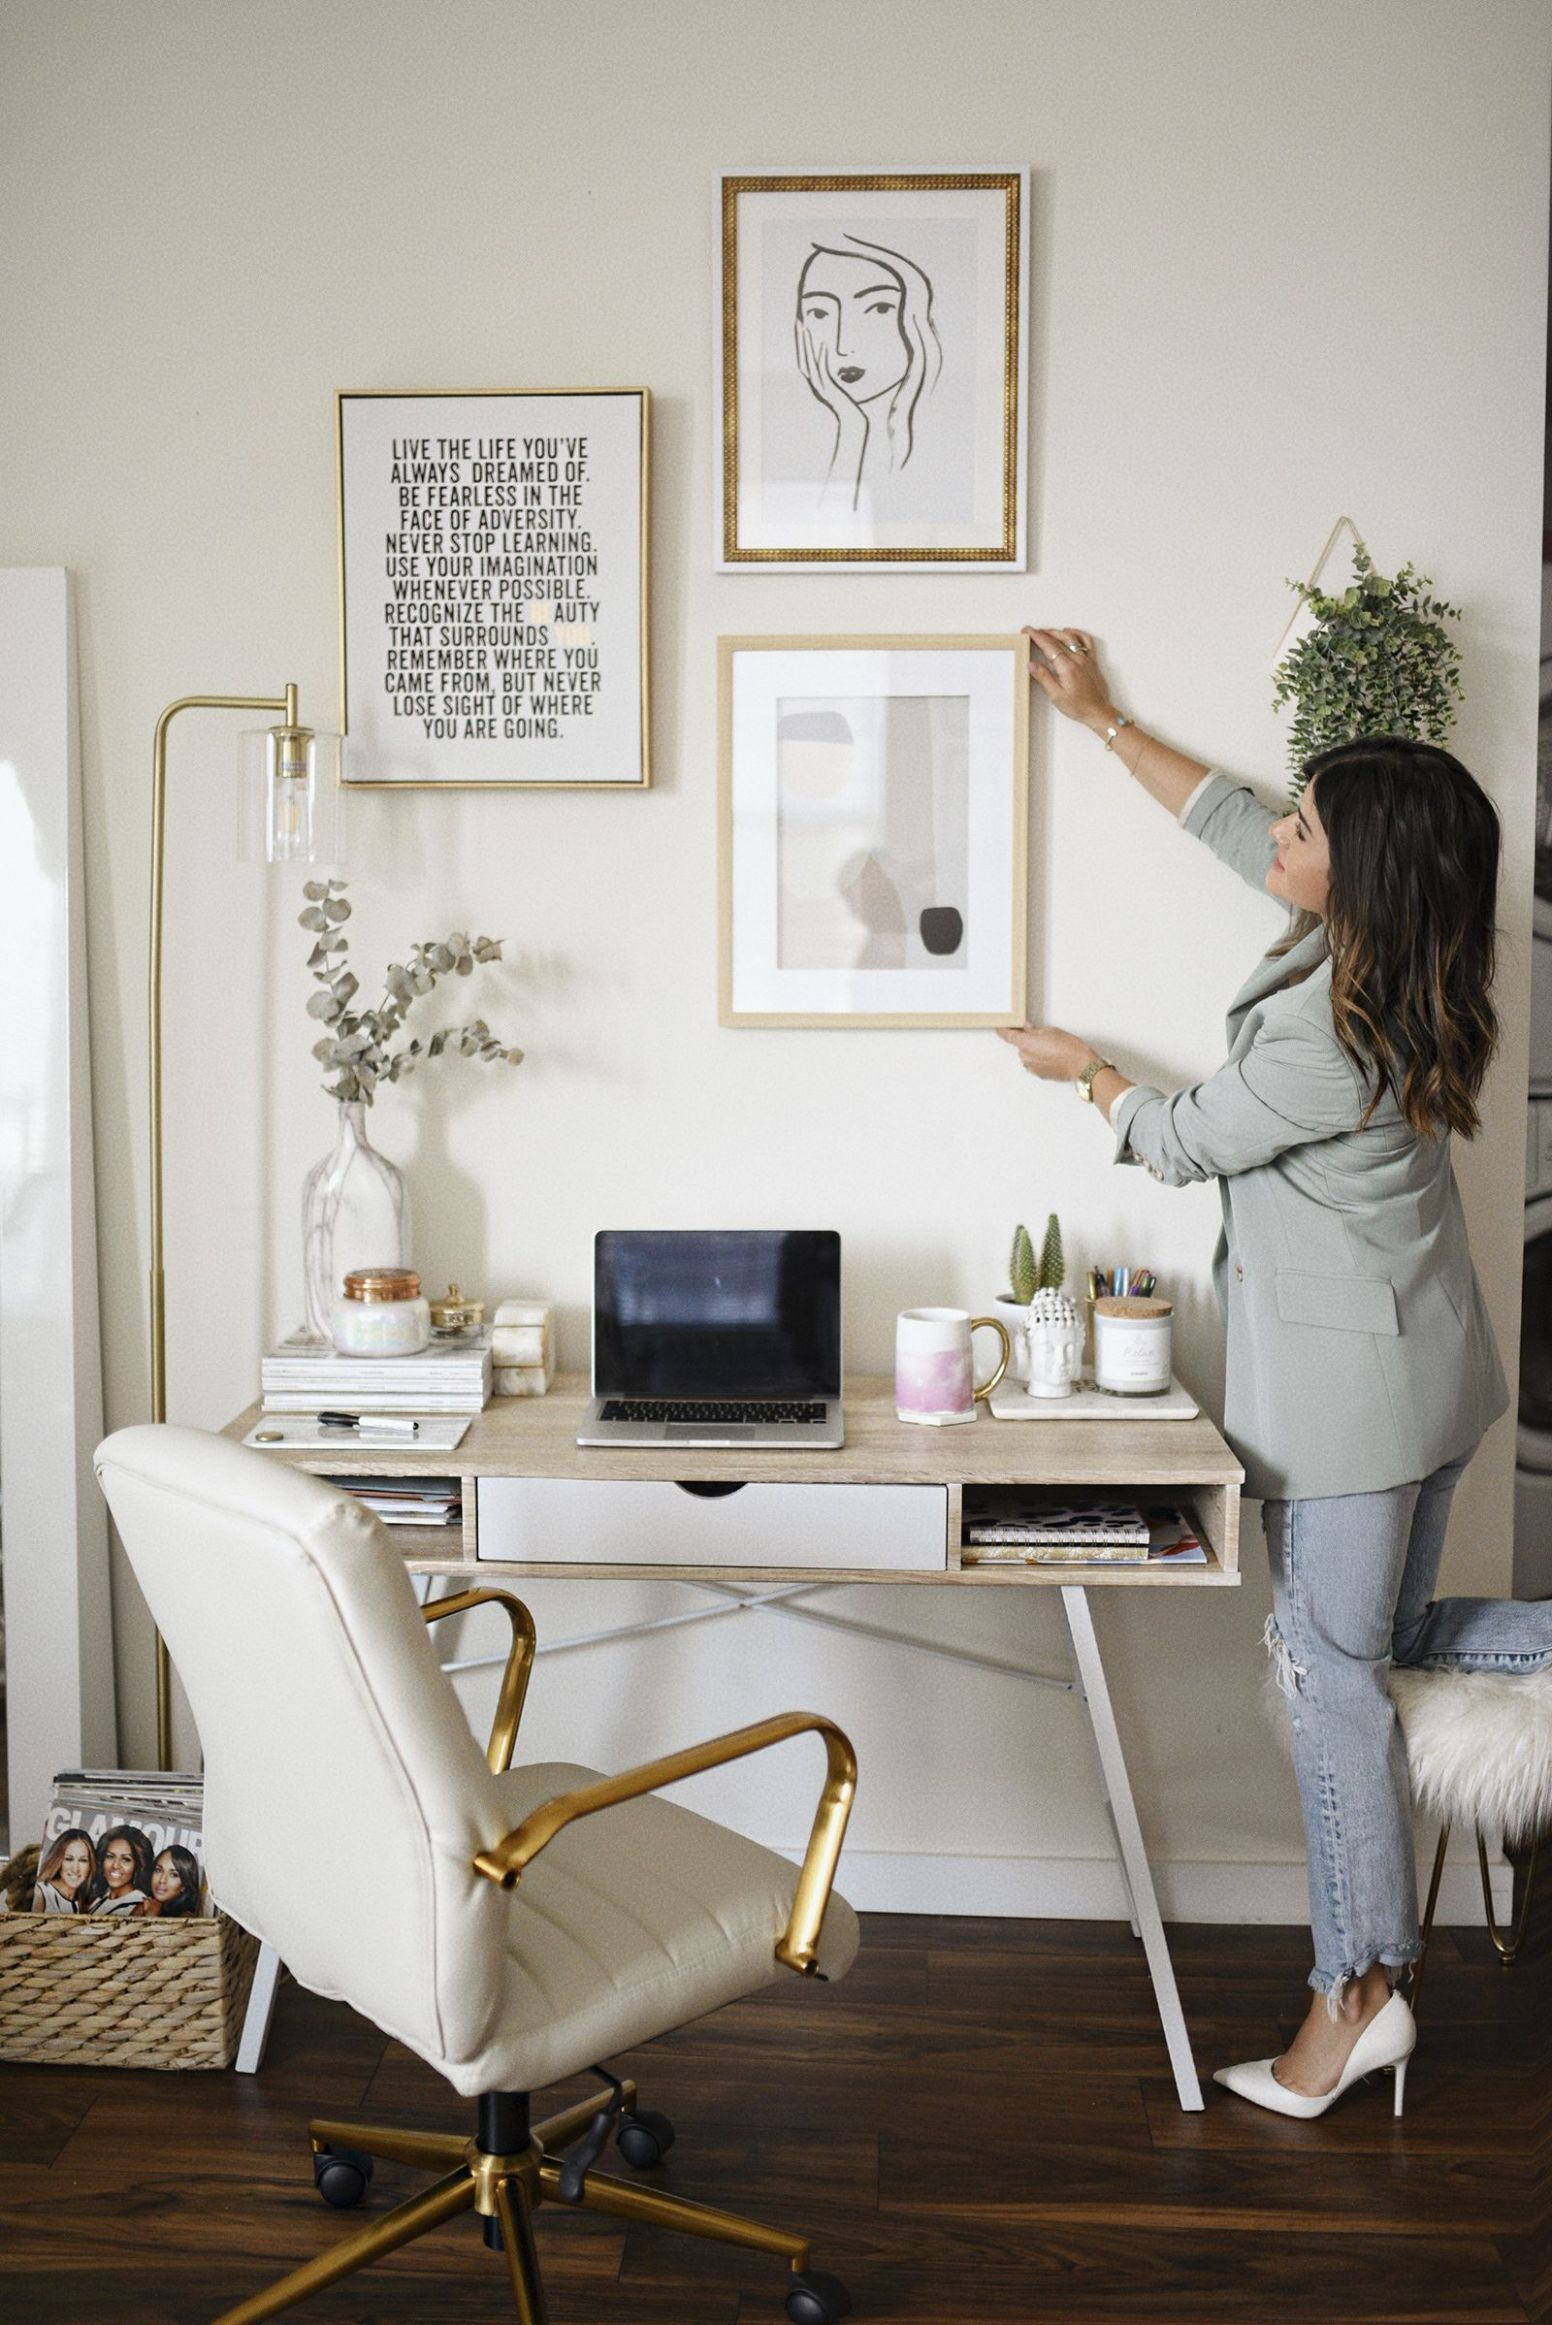 HOME OFFICE DECOR IDEAS | Home, Home office decor, Home accessories - home office makeover ideas